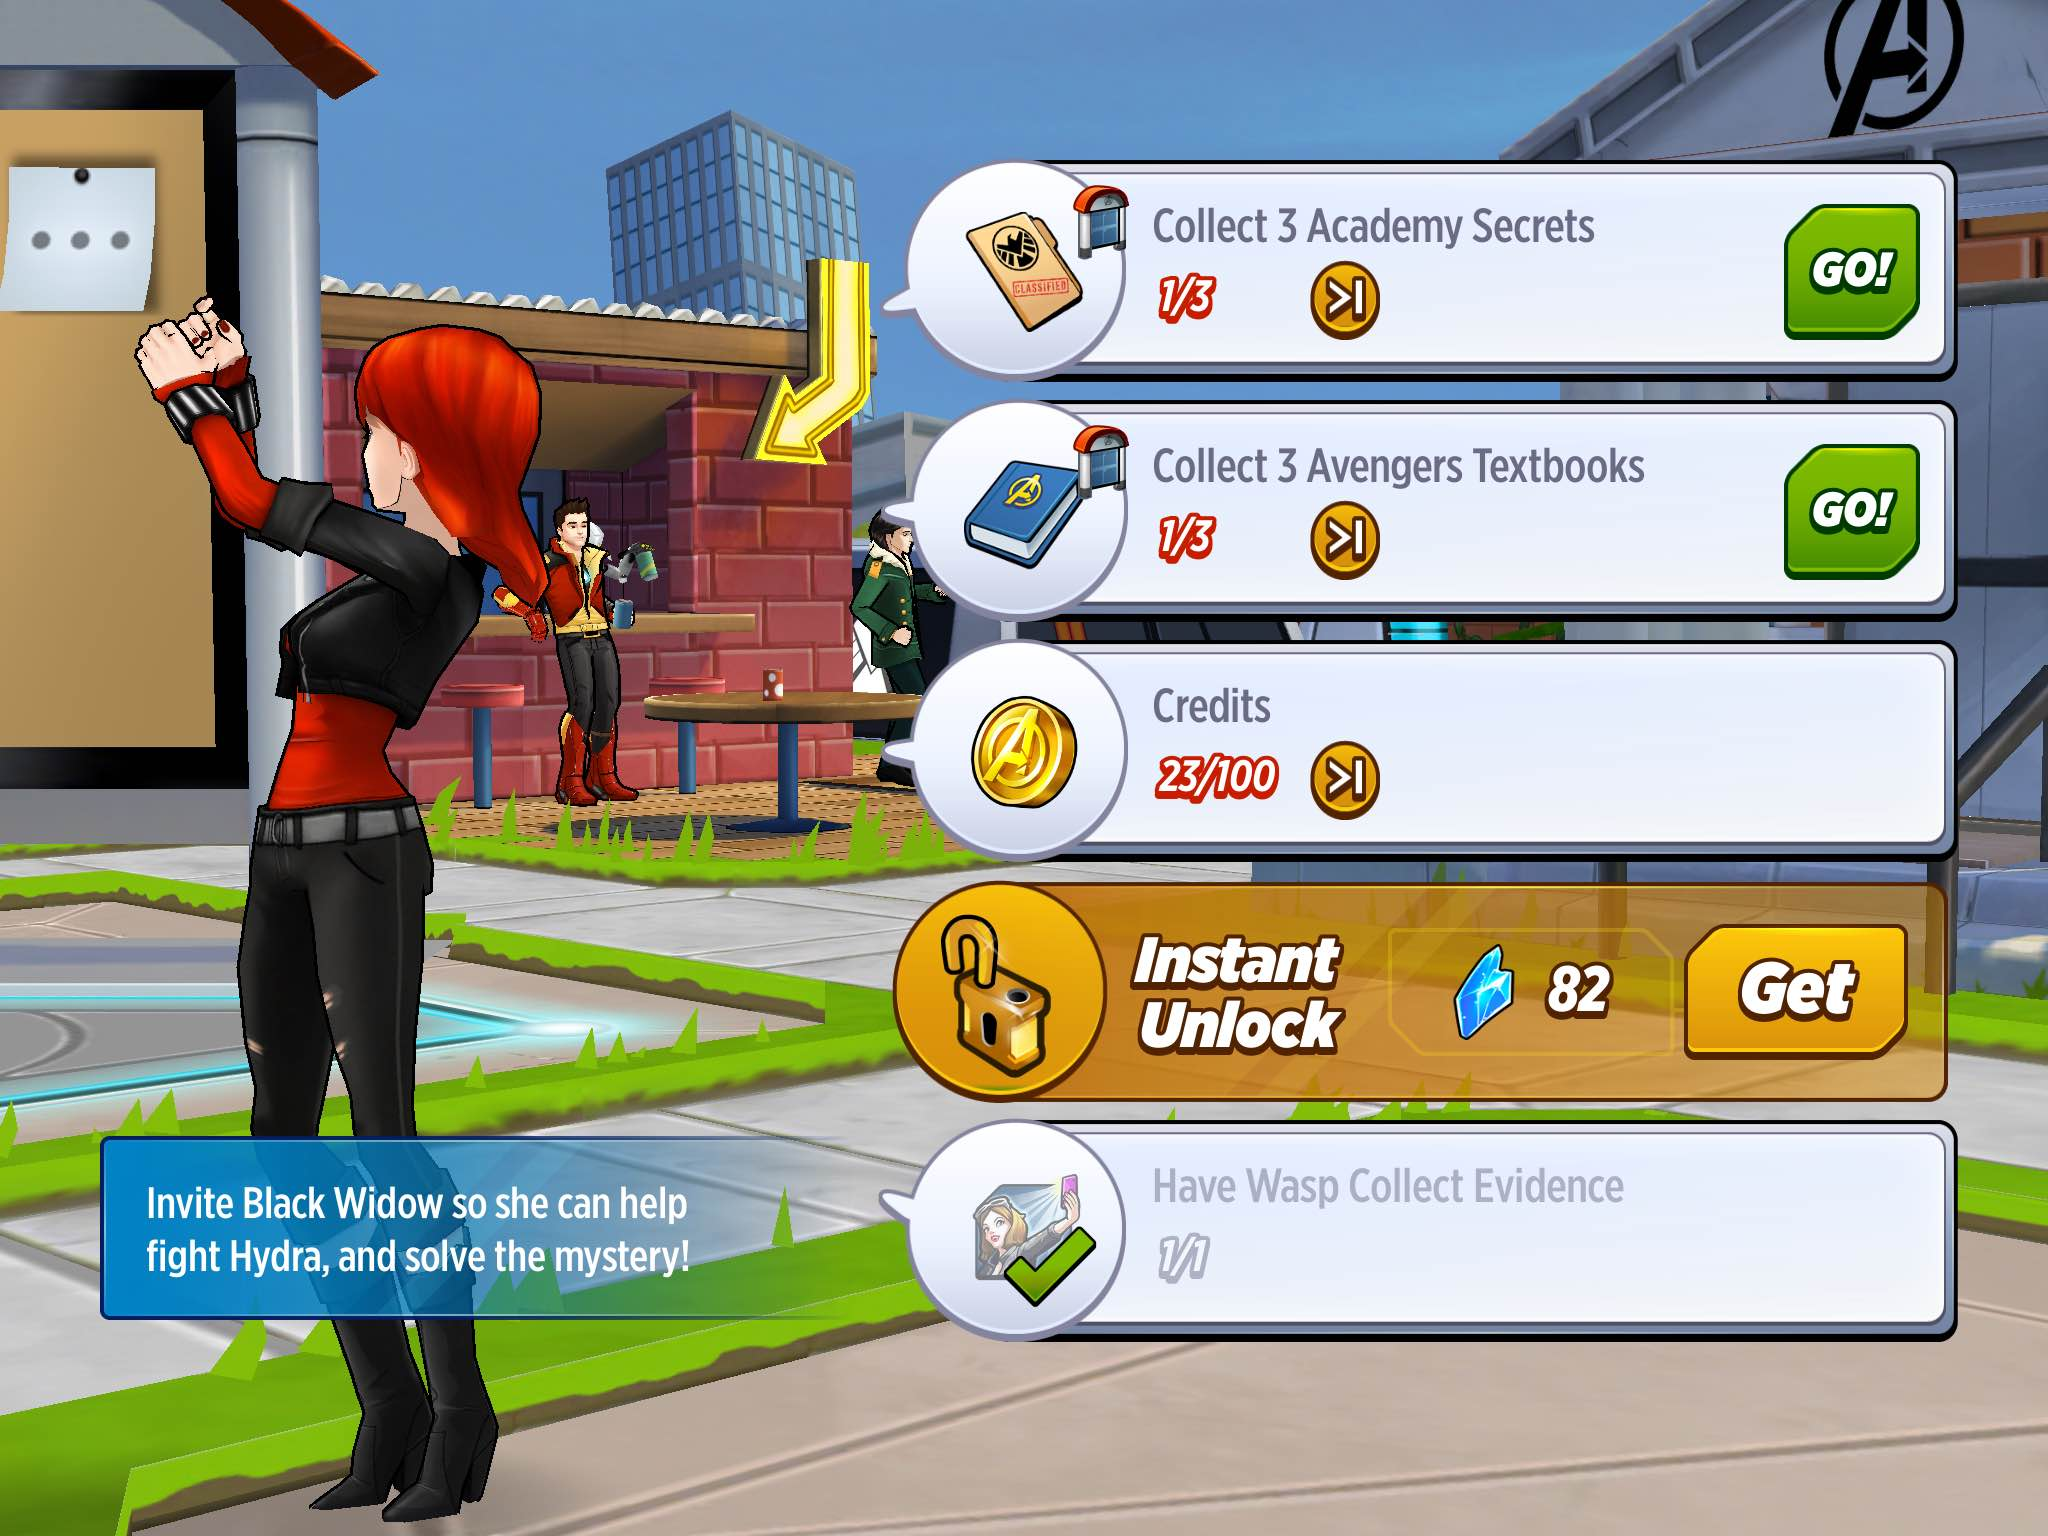 Marvel Avengers Academy - Free to play at its very worst